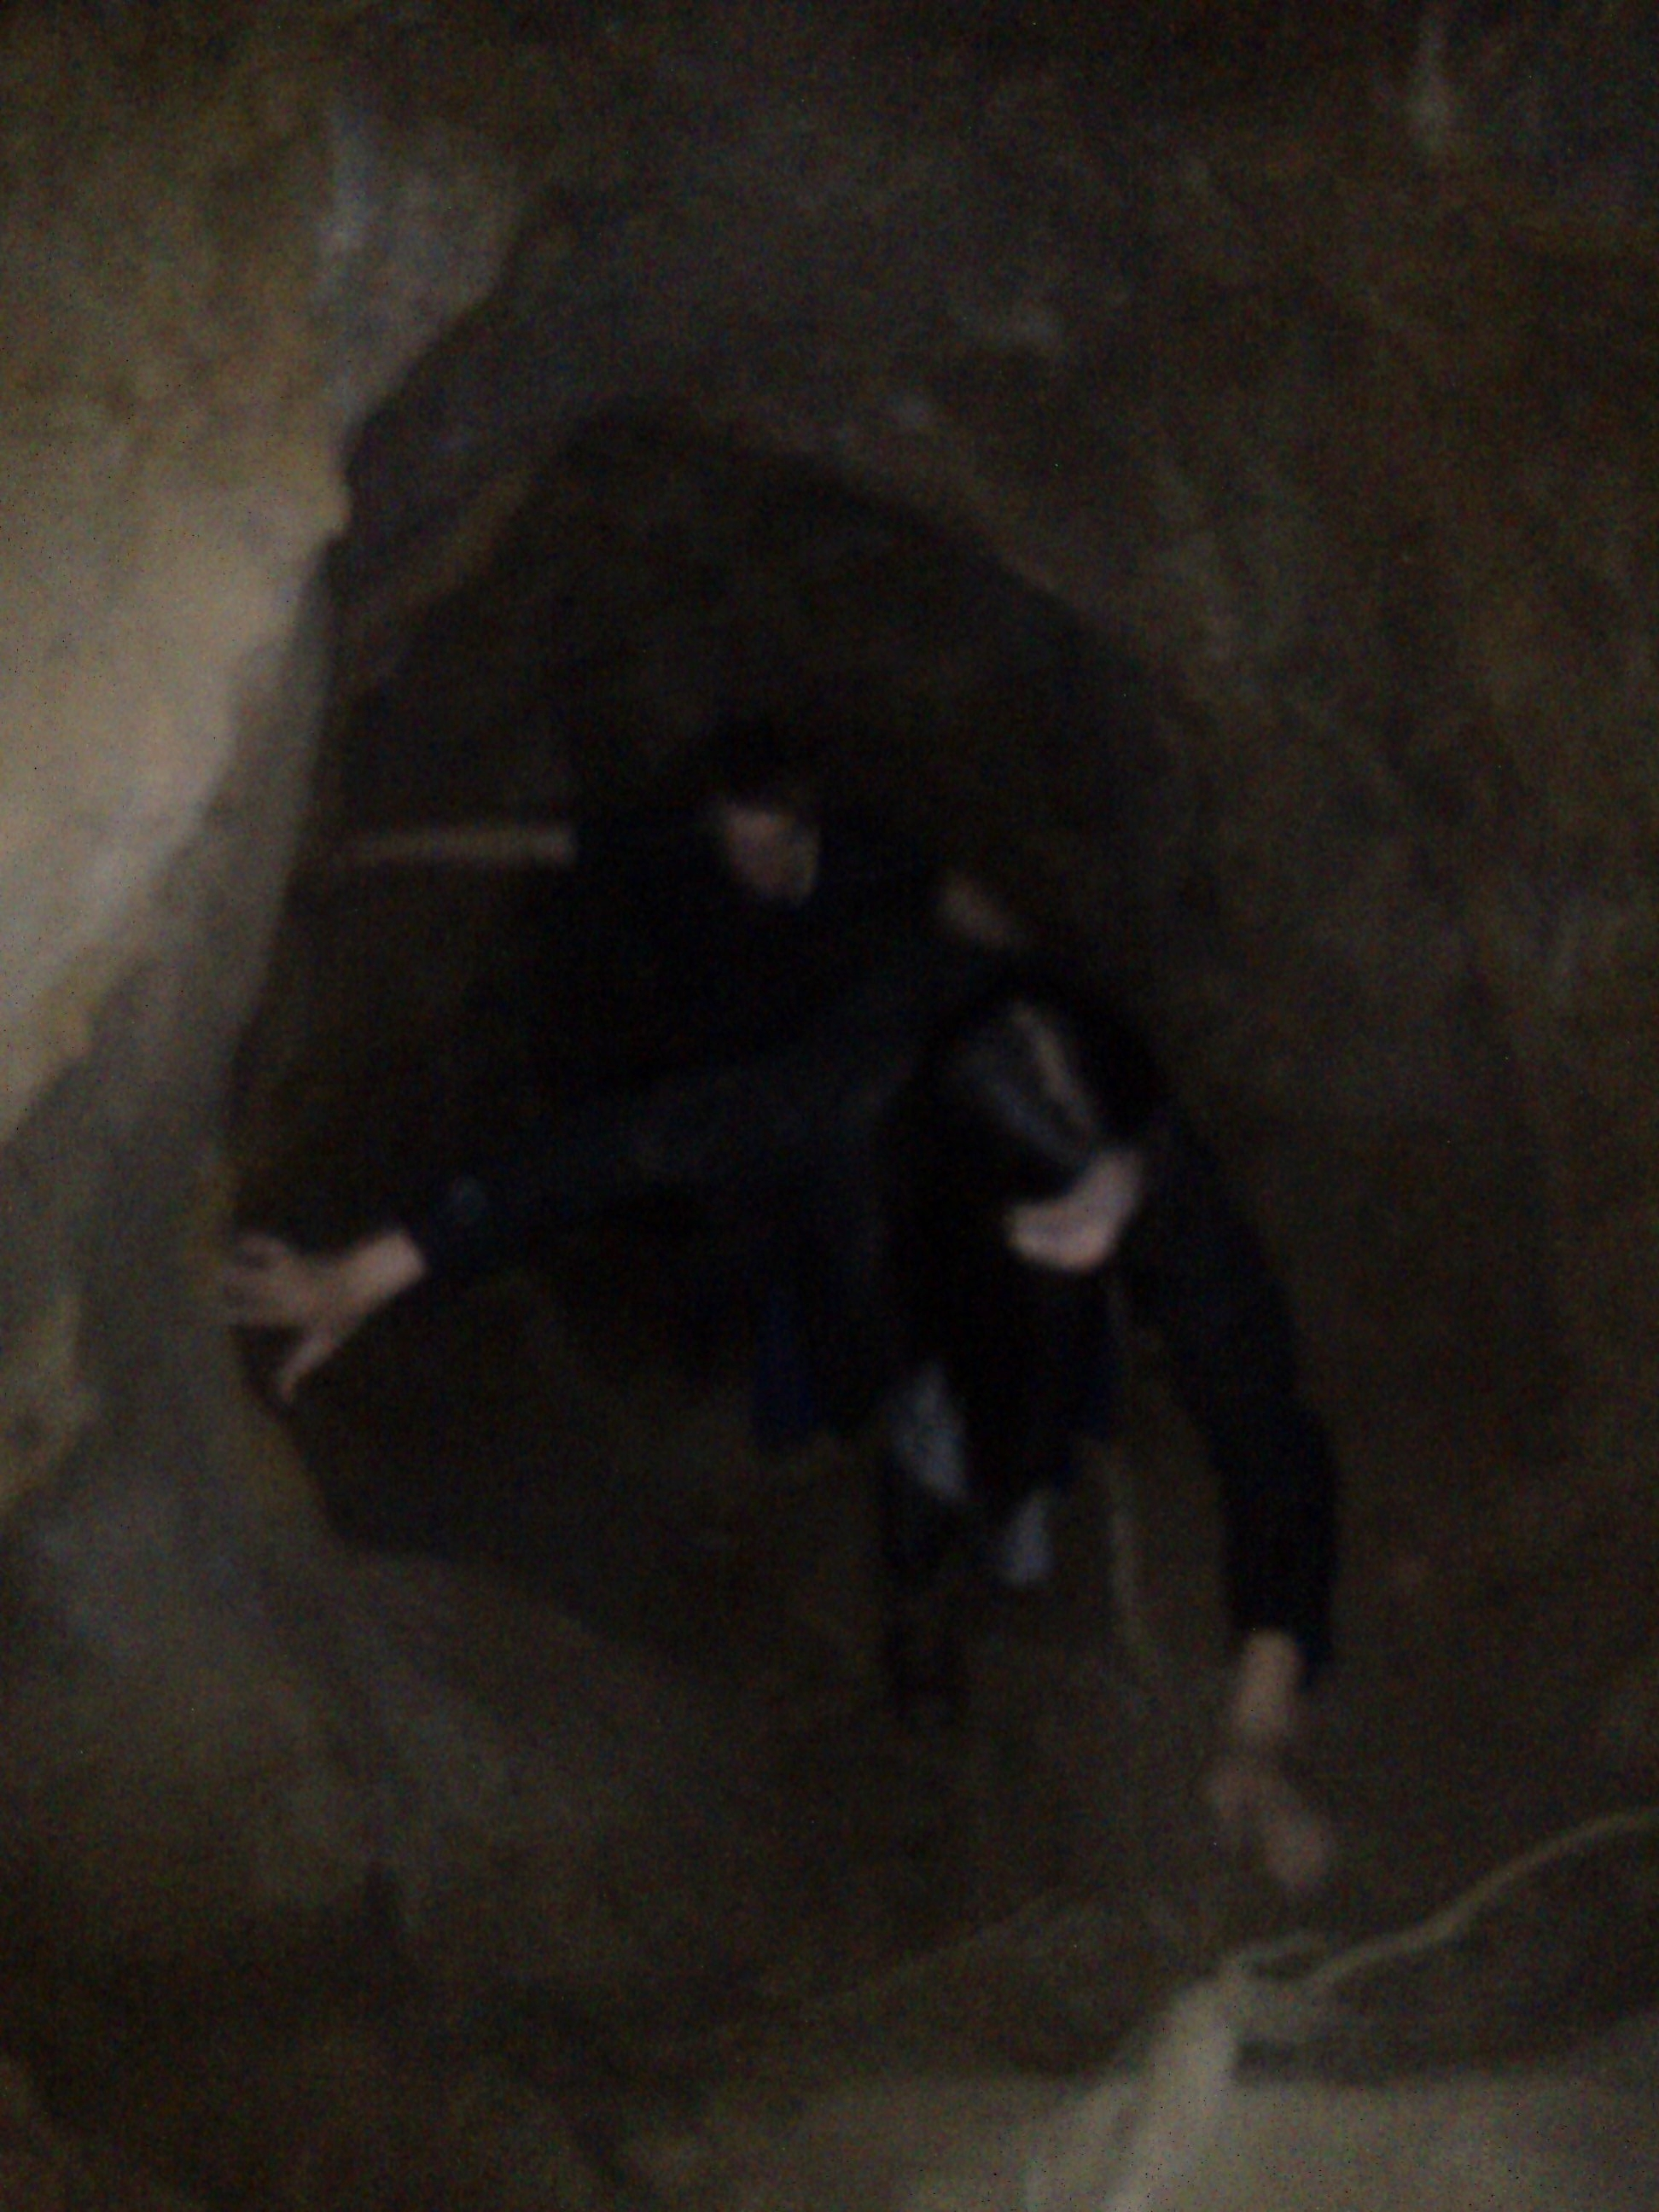 Climbing up the tunnel. Apologies for the bad picture. There was no light and I was using an old phone camera.